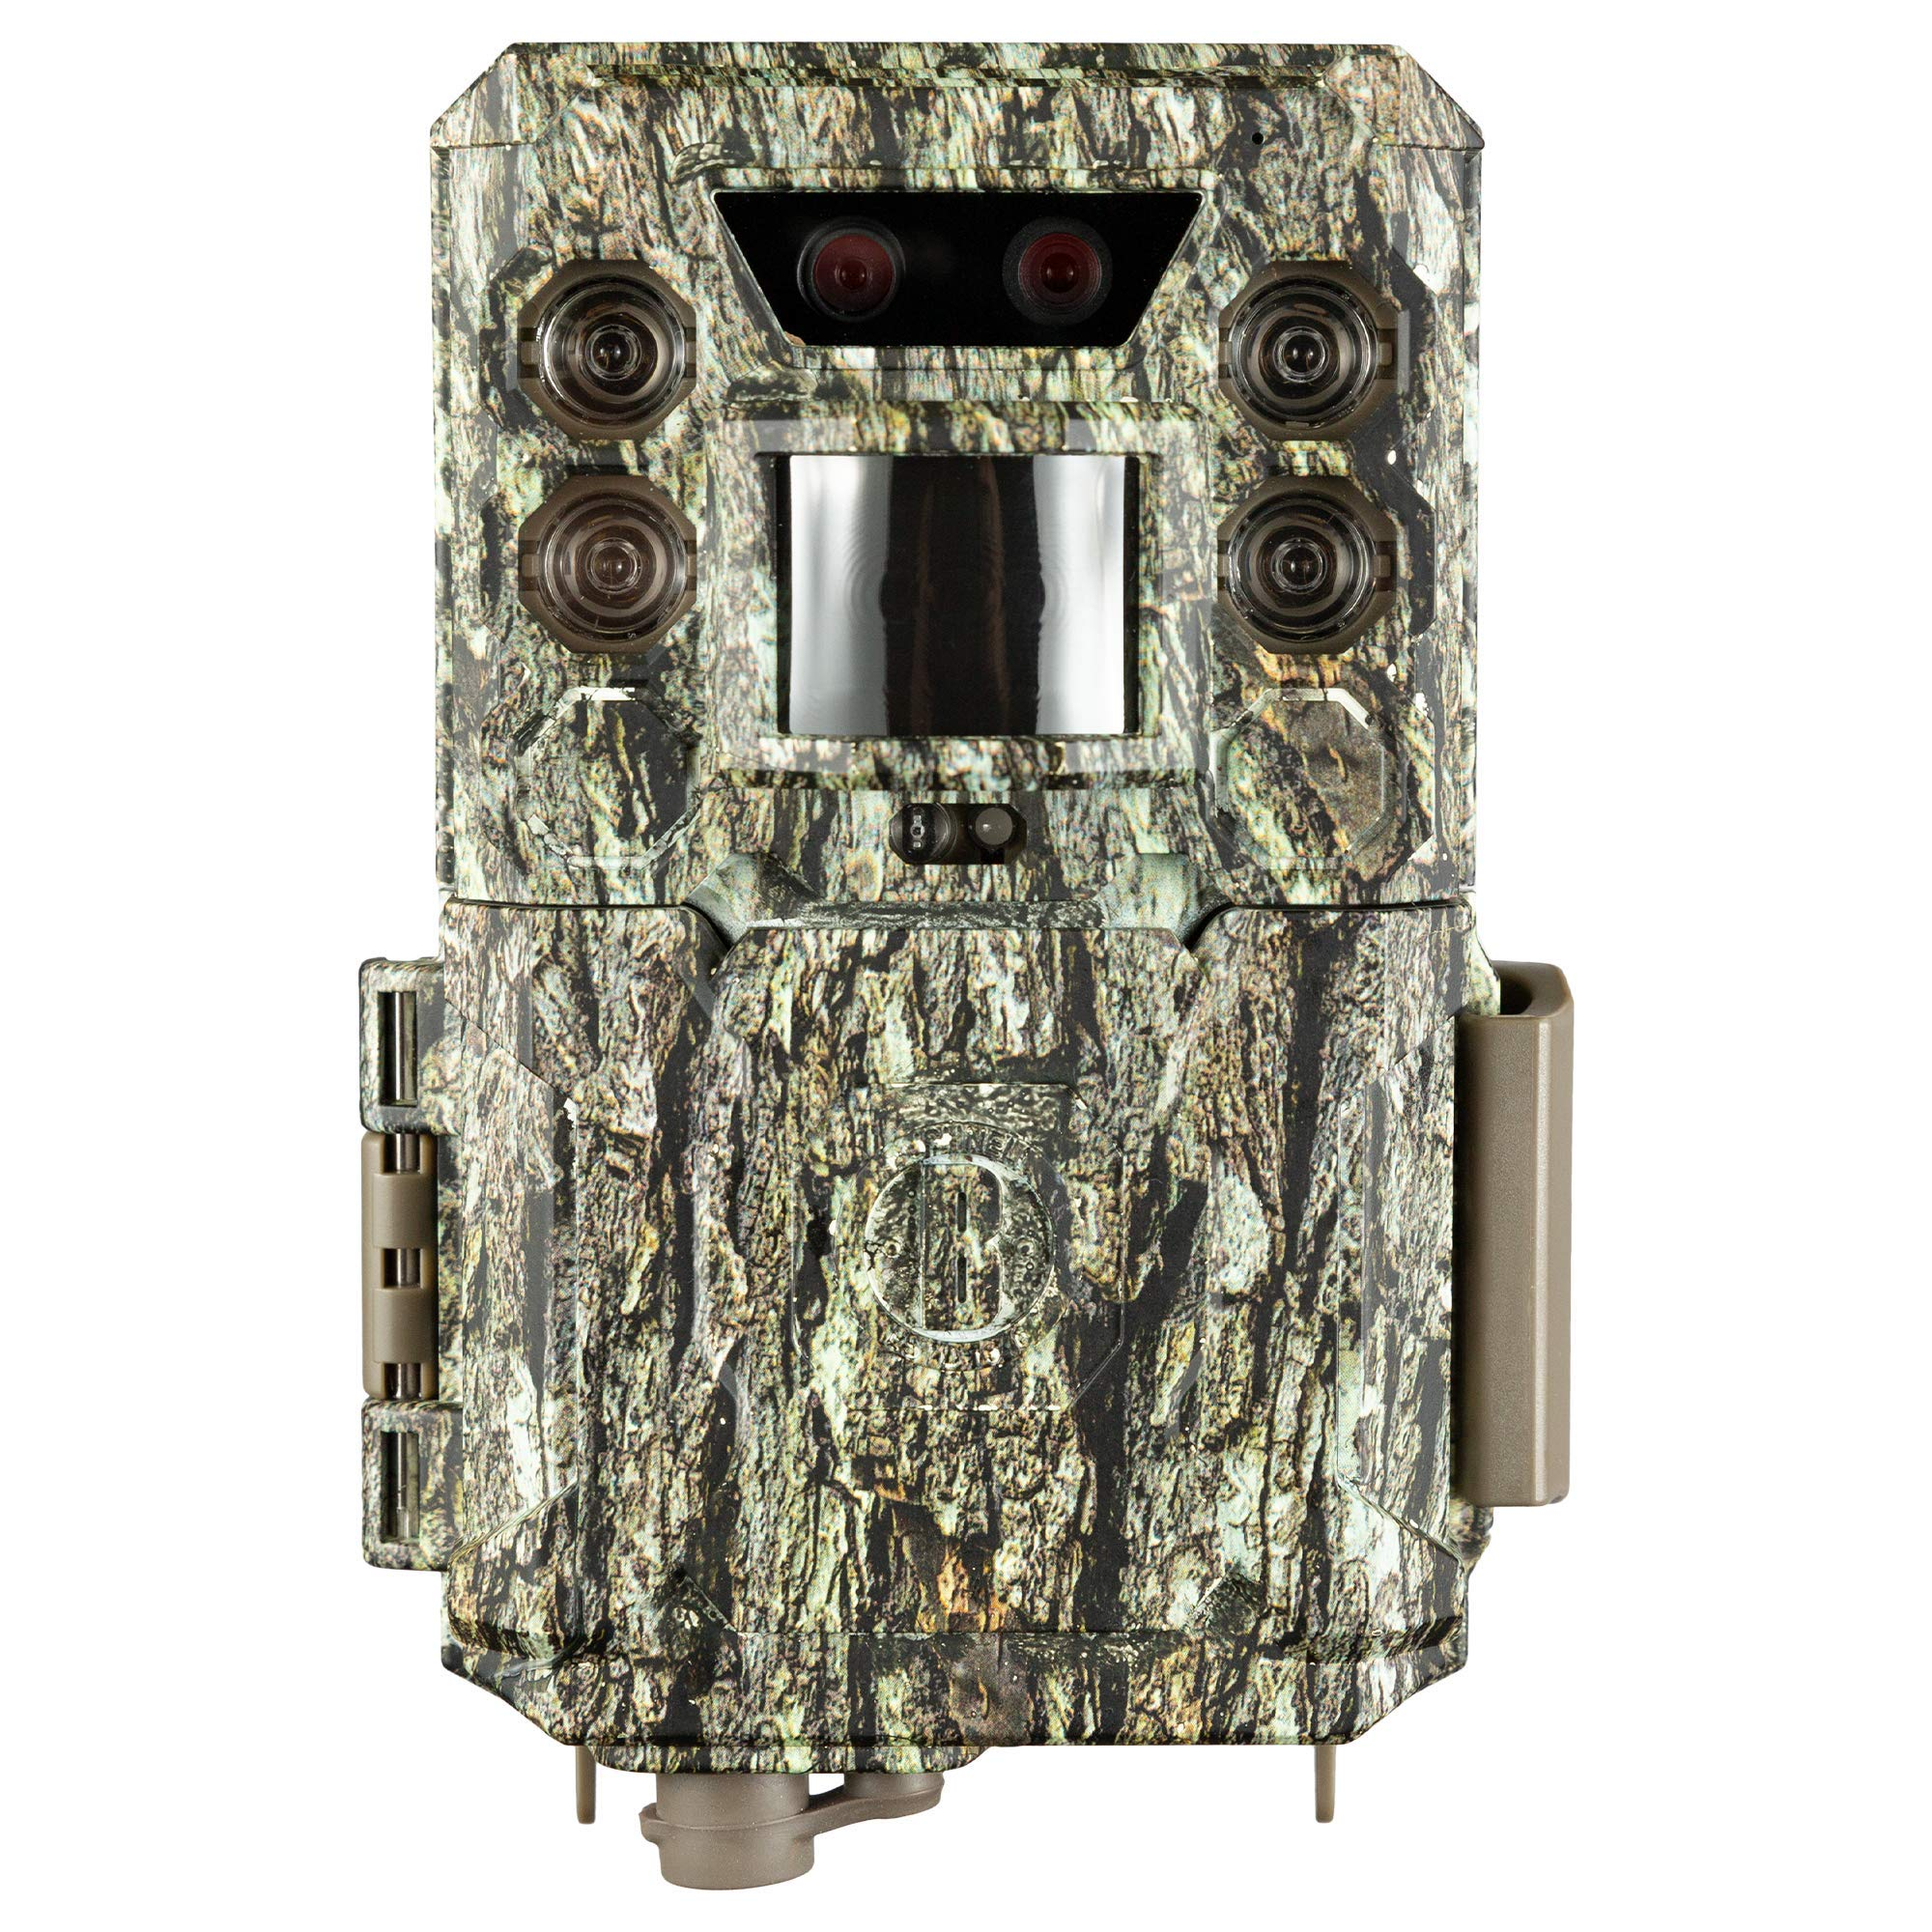 Bushnell 30MP CORE Trail Camera, Dual Sensor, Low Glow_119975C by Bushnell by Primos